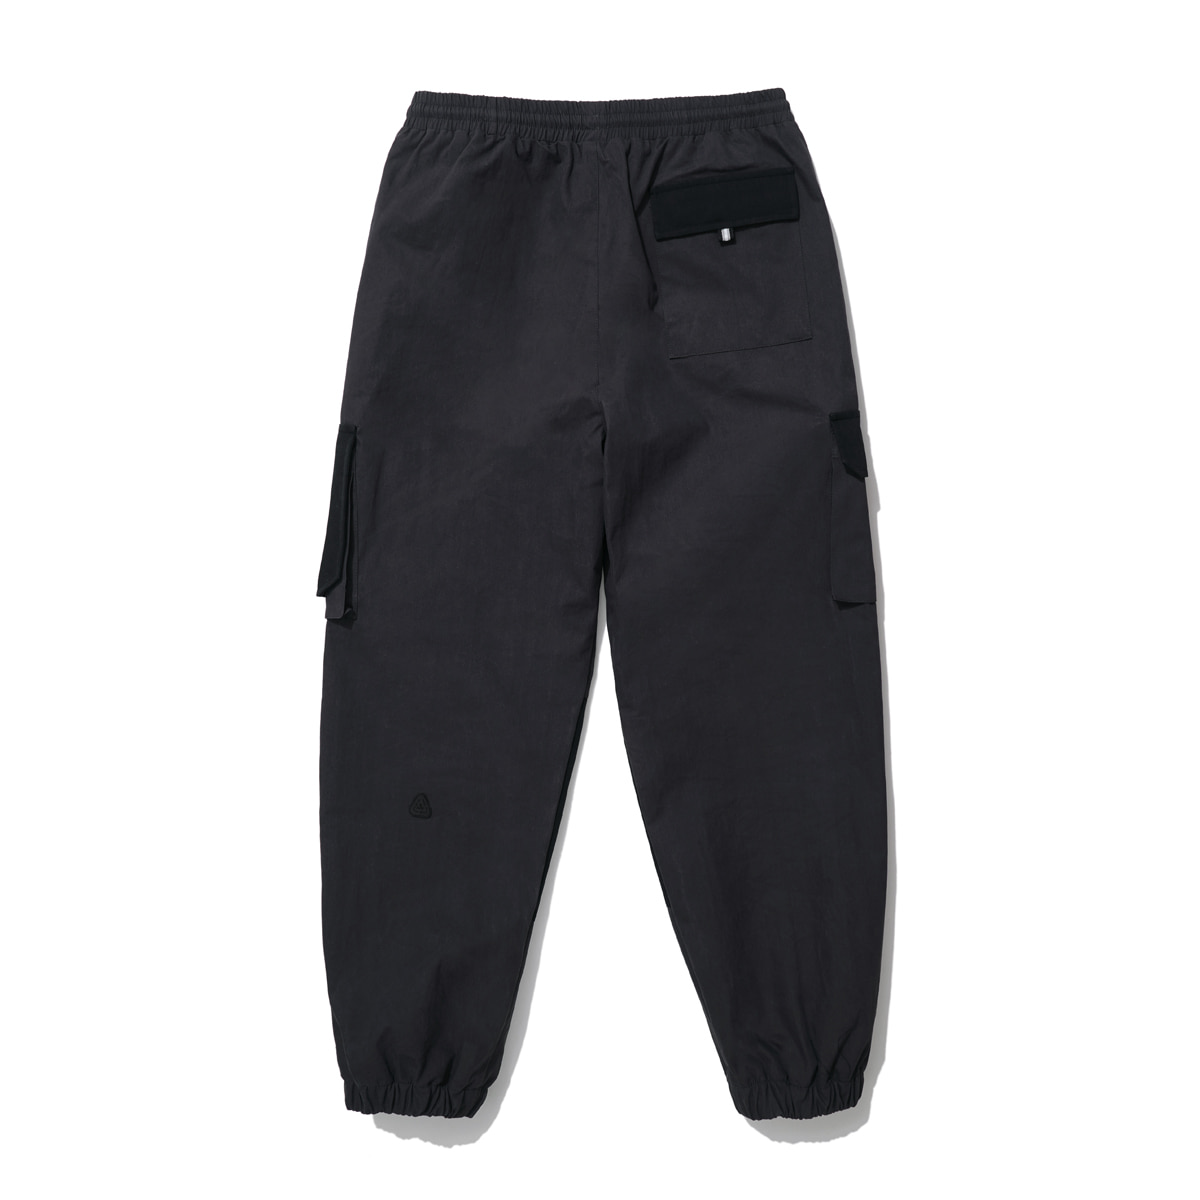 Utility Cago Pants (gray)